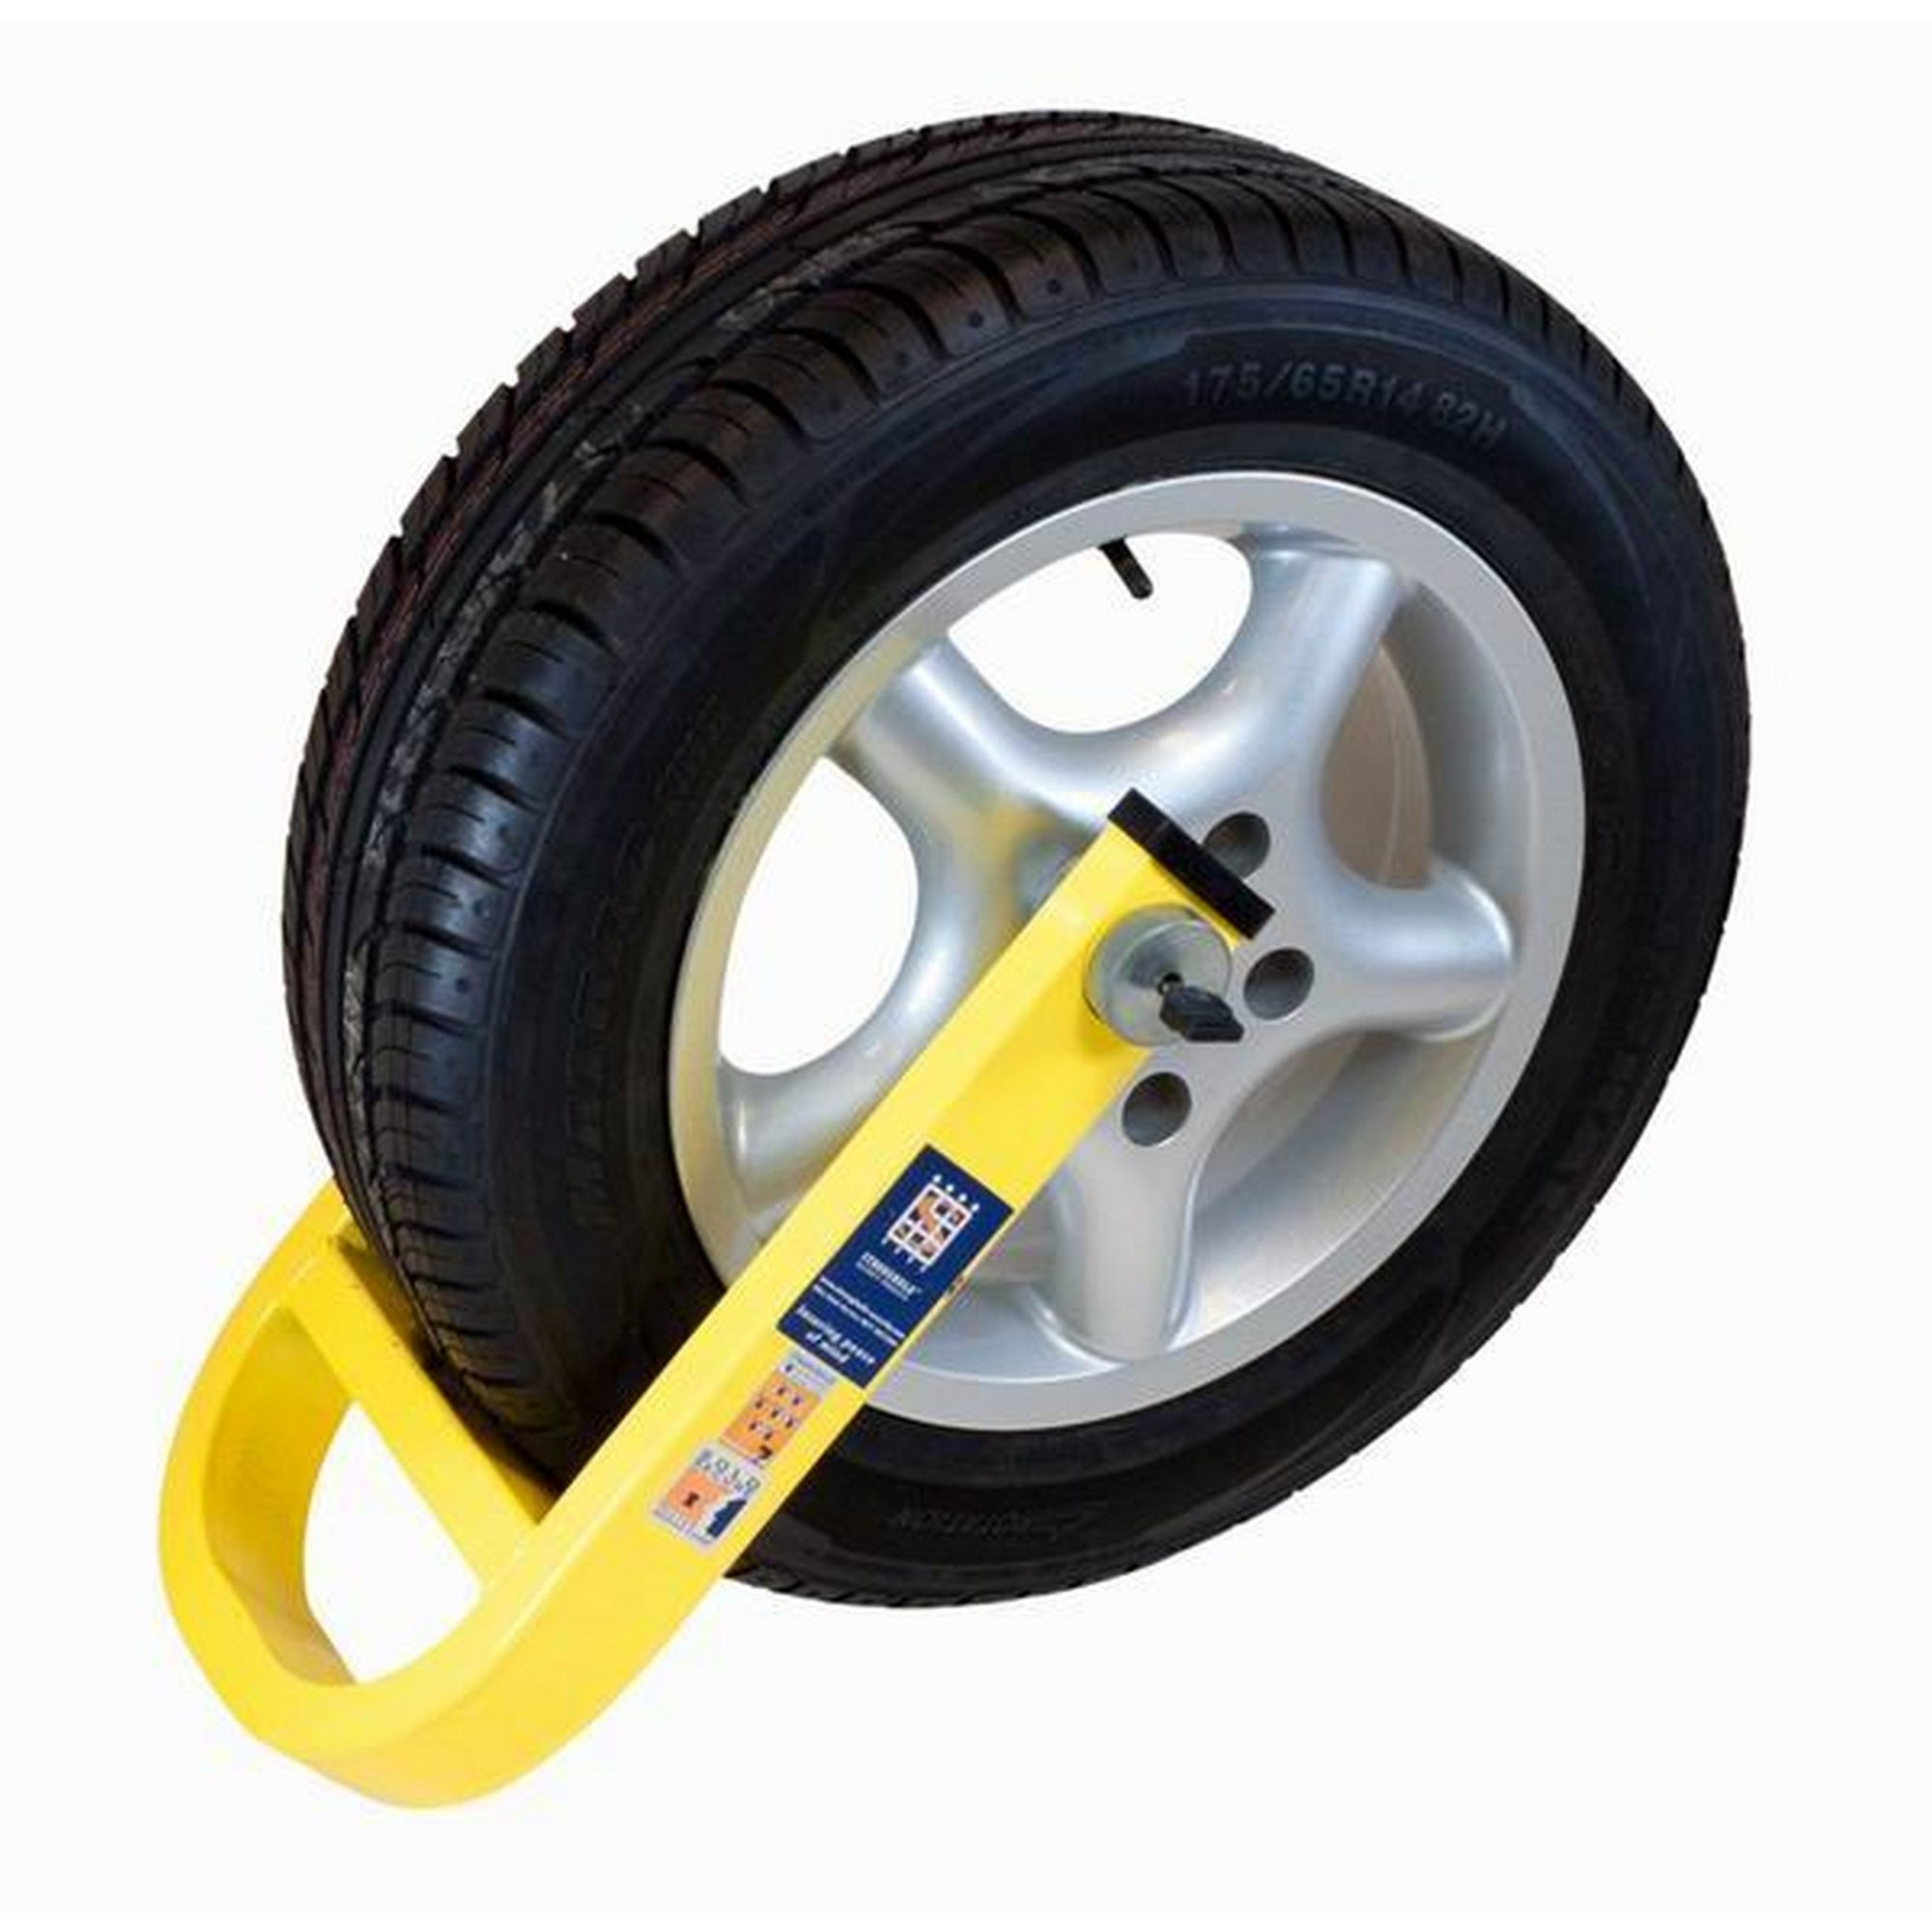 Stronghold Waterproof Alloy Wheel Clamp (One Size) (Yellow)